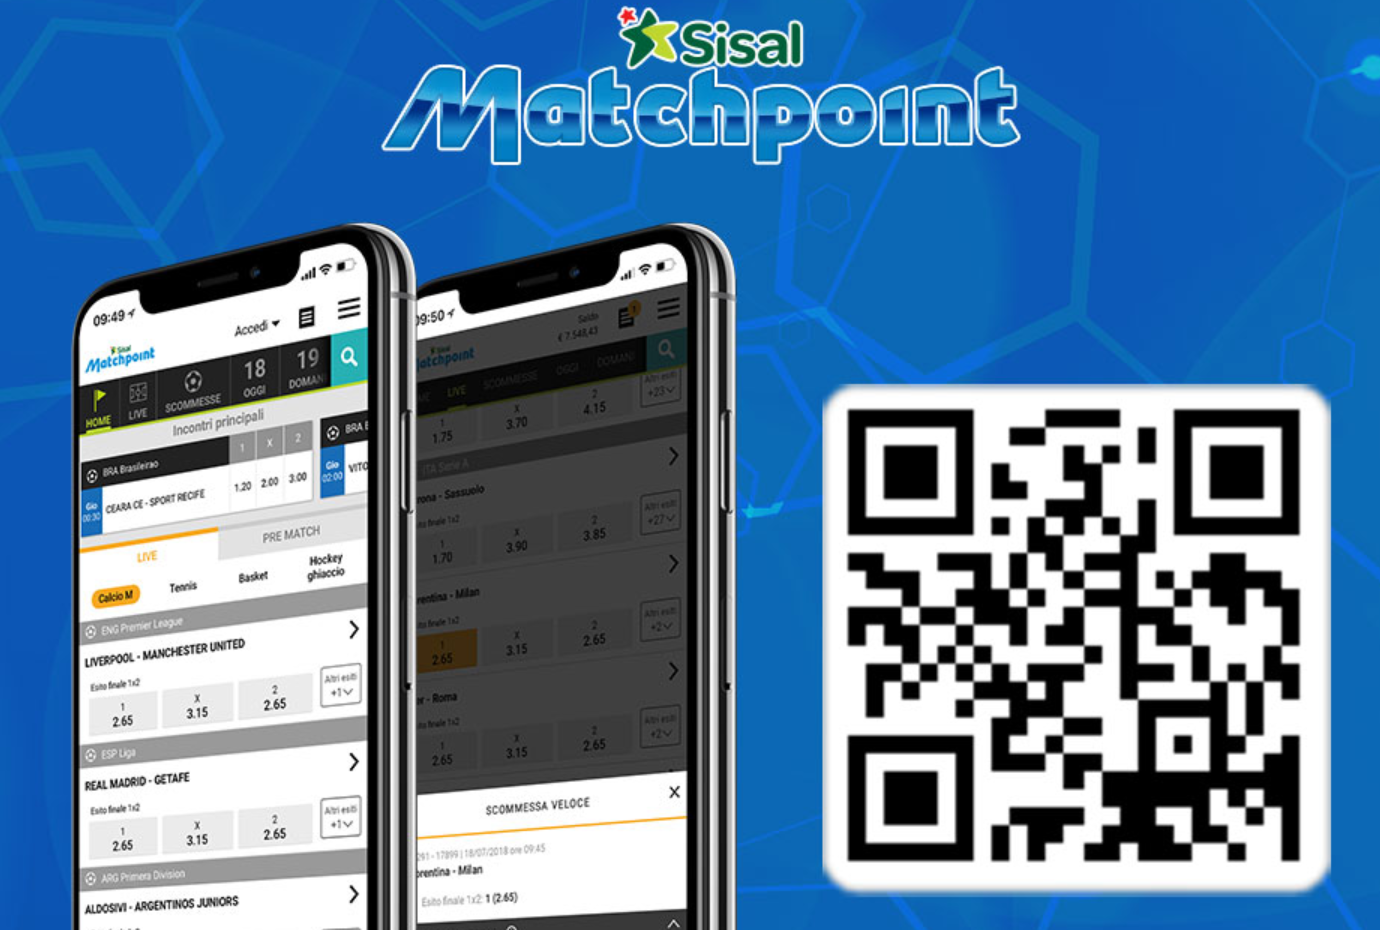 Sisal matchpoint mobile tuo account